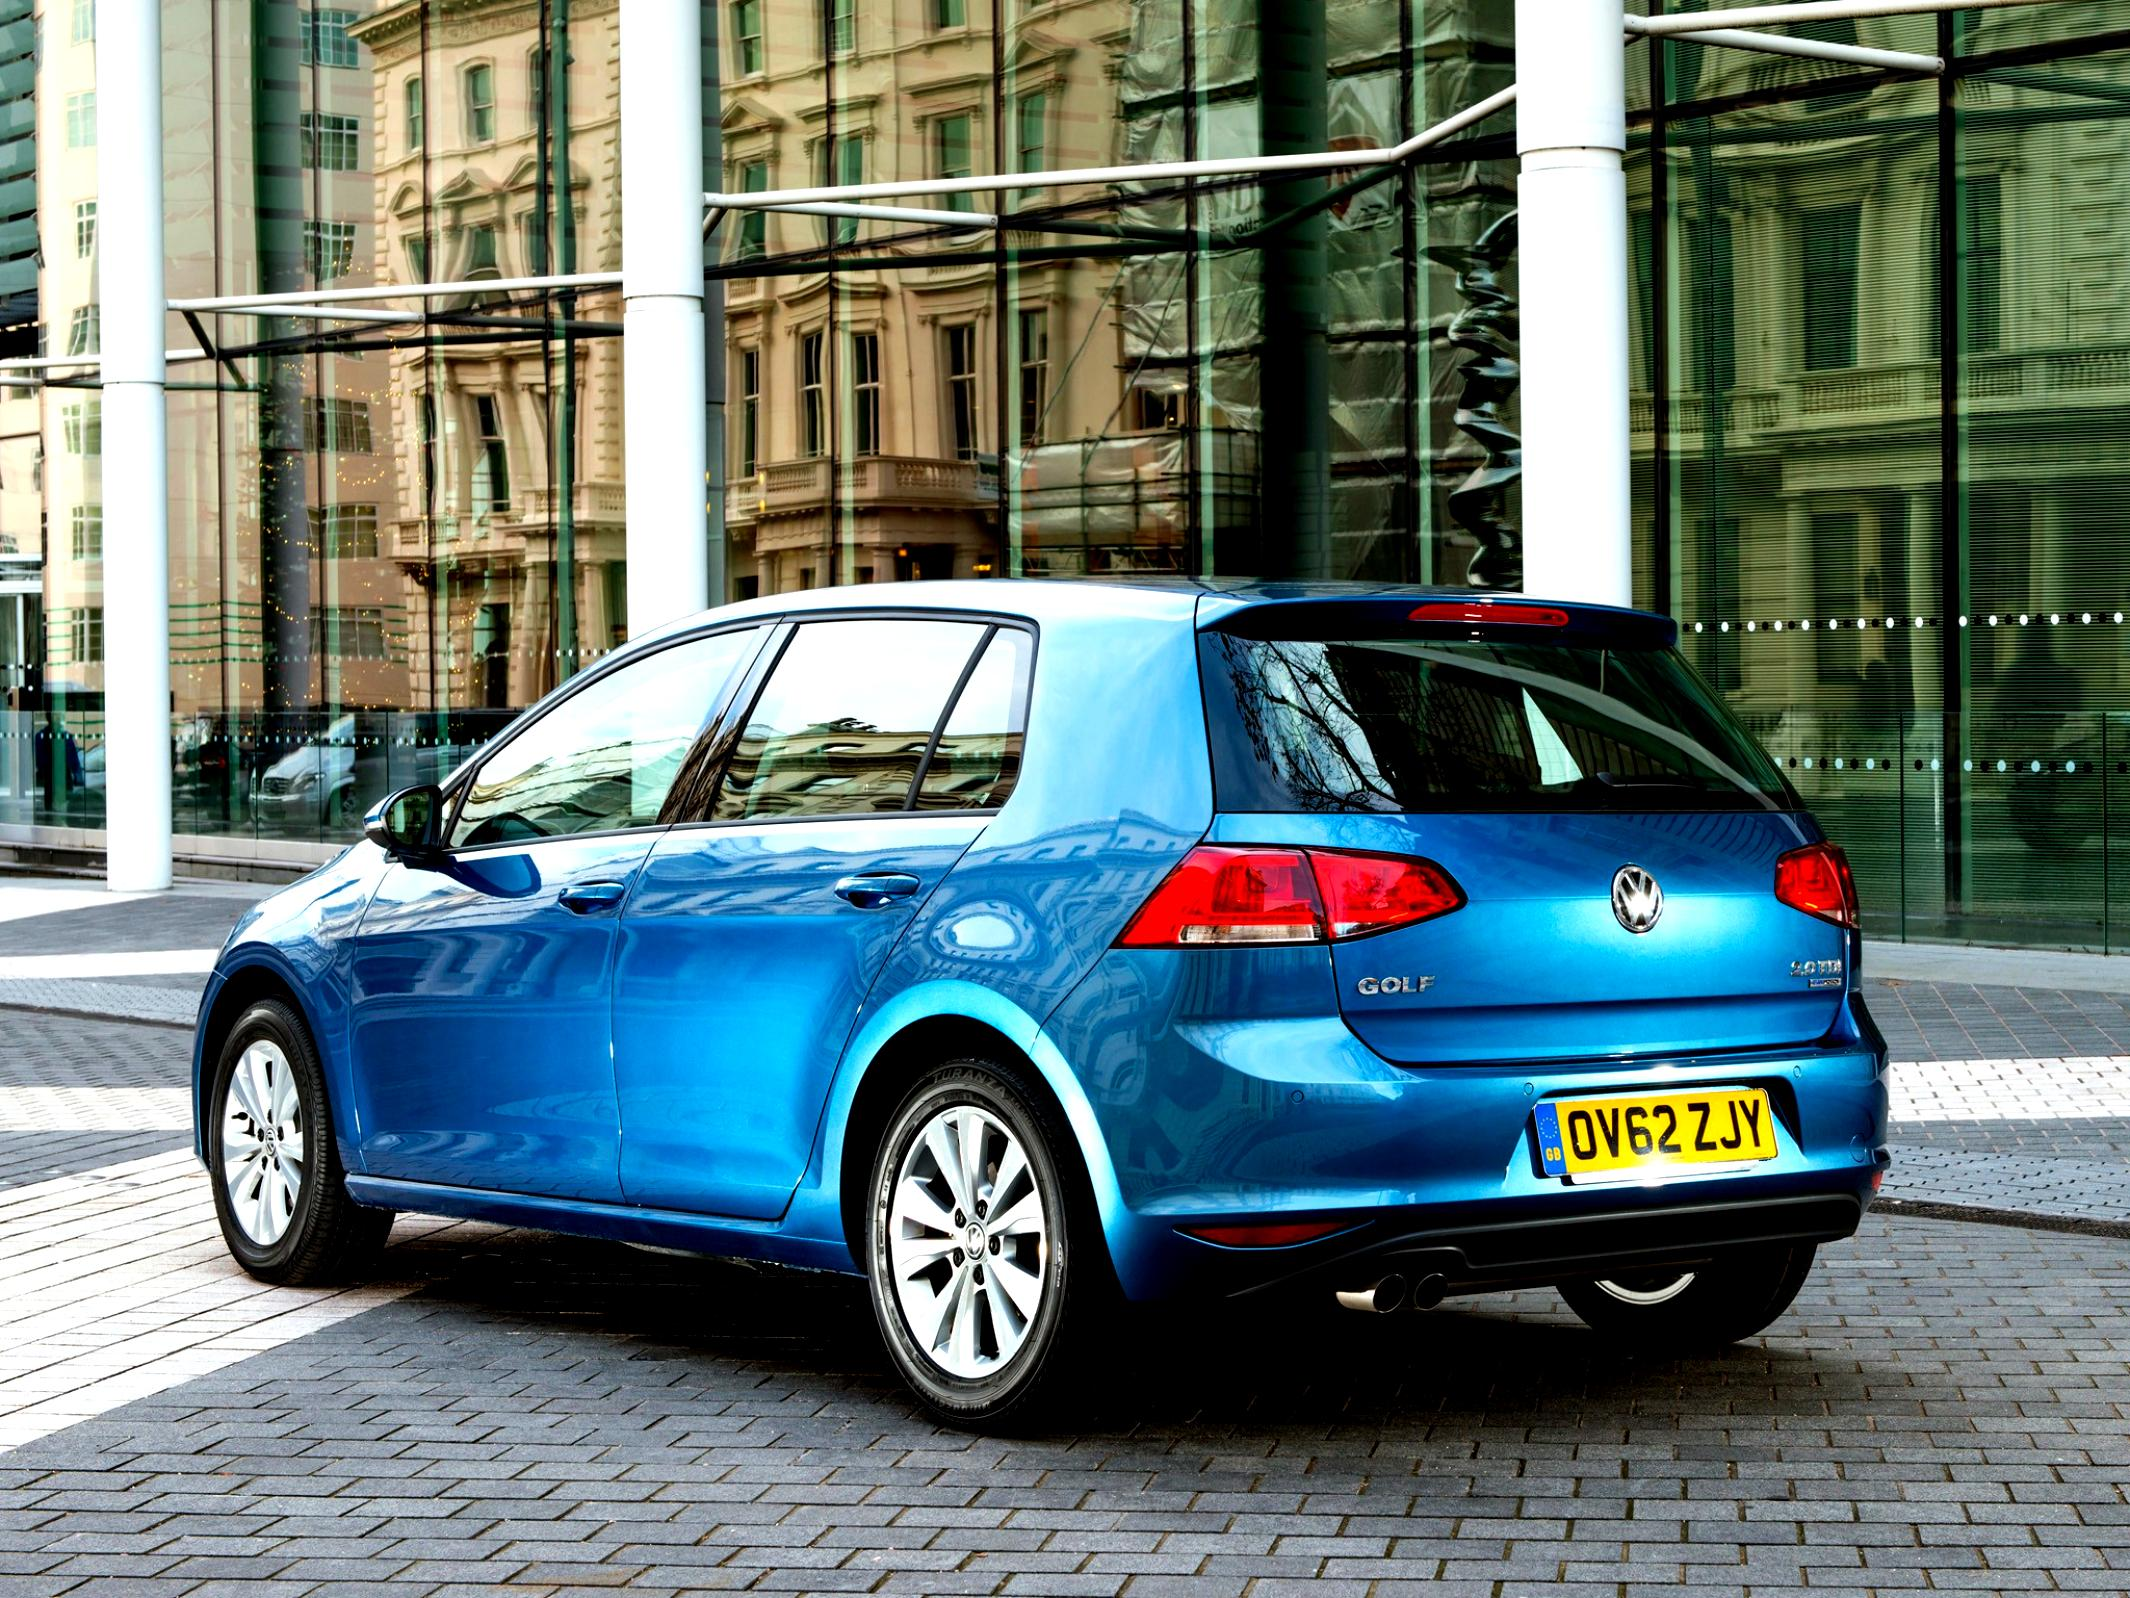 Volkswagen Golf VII 5 Doors 2012 #61